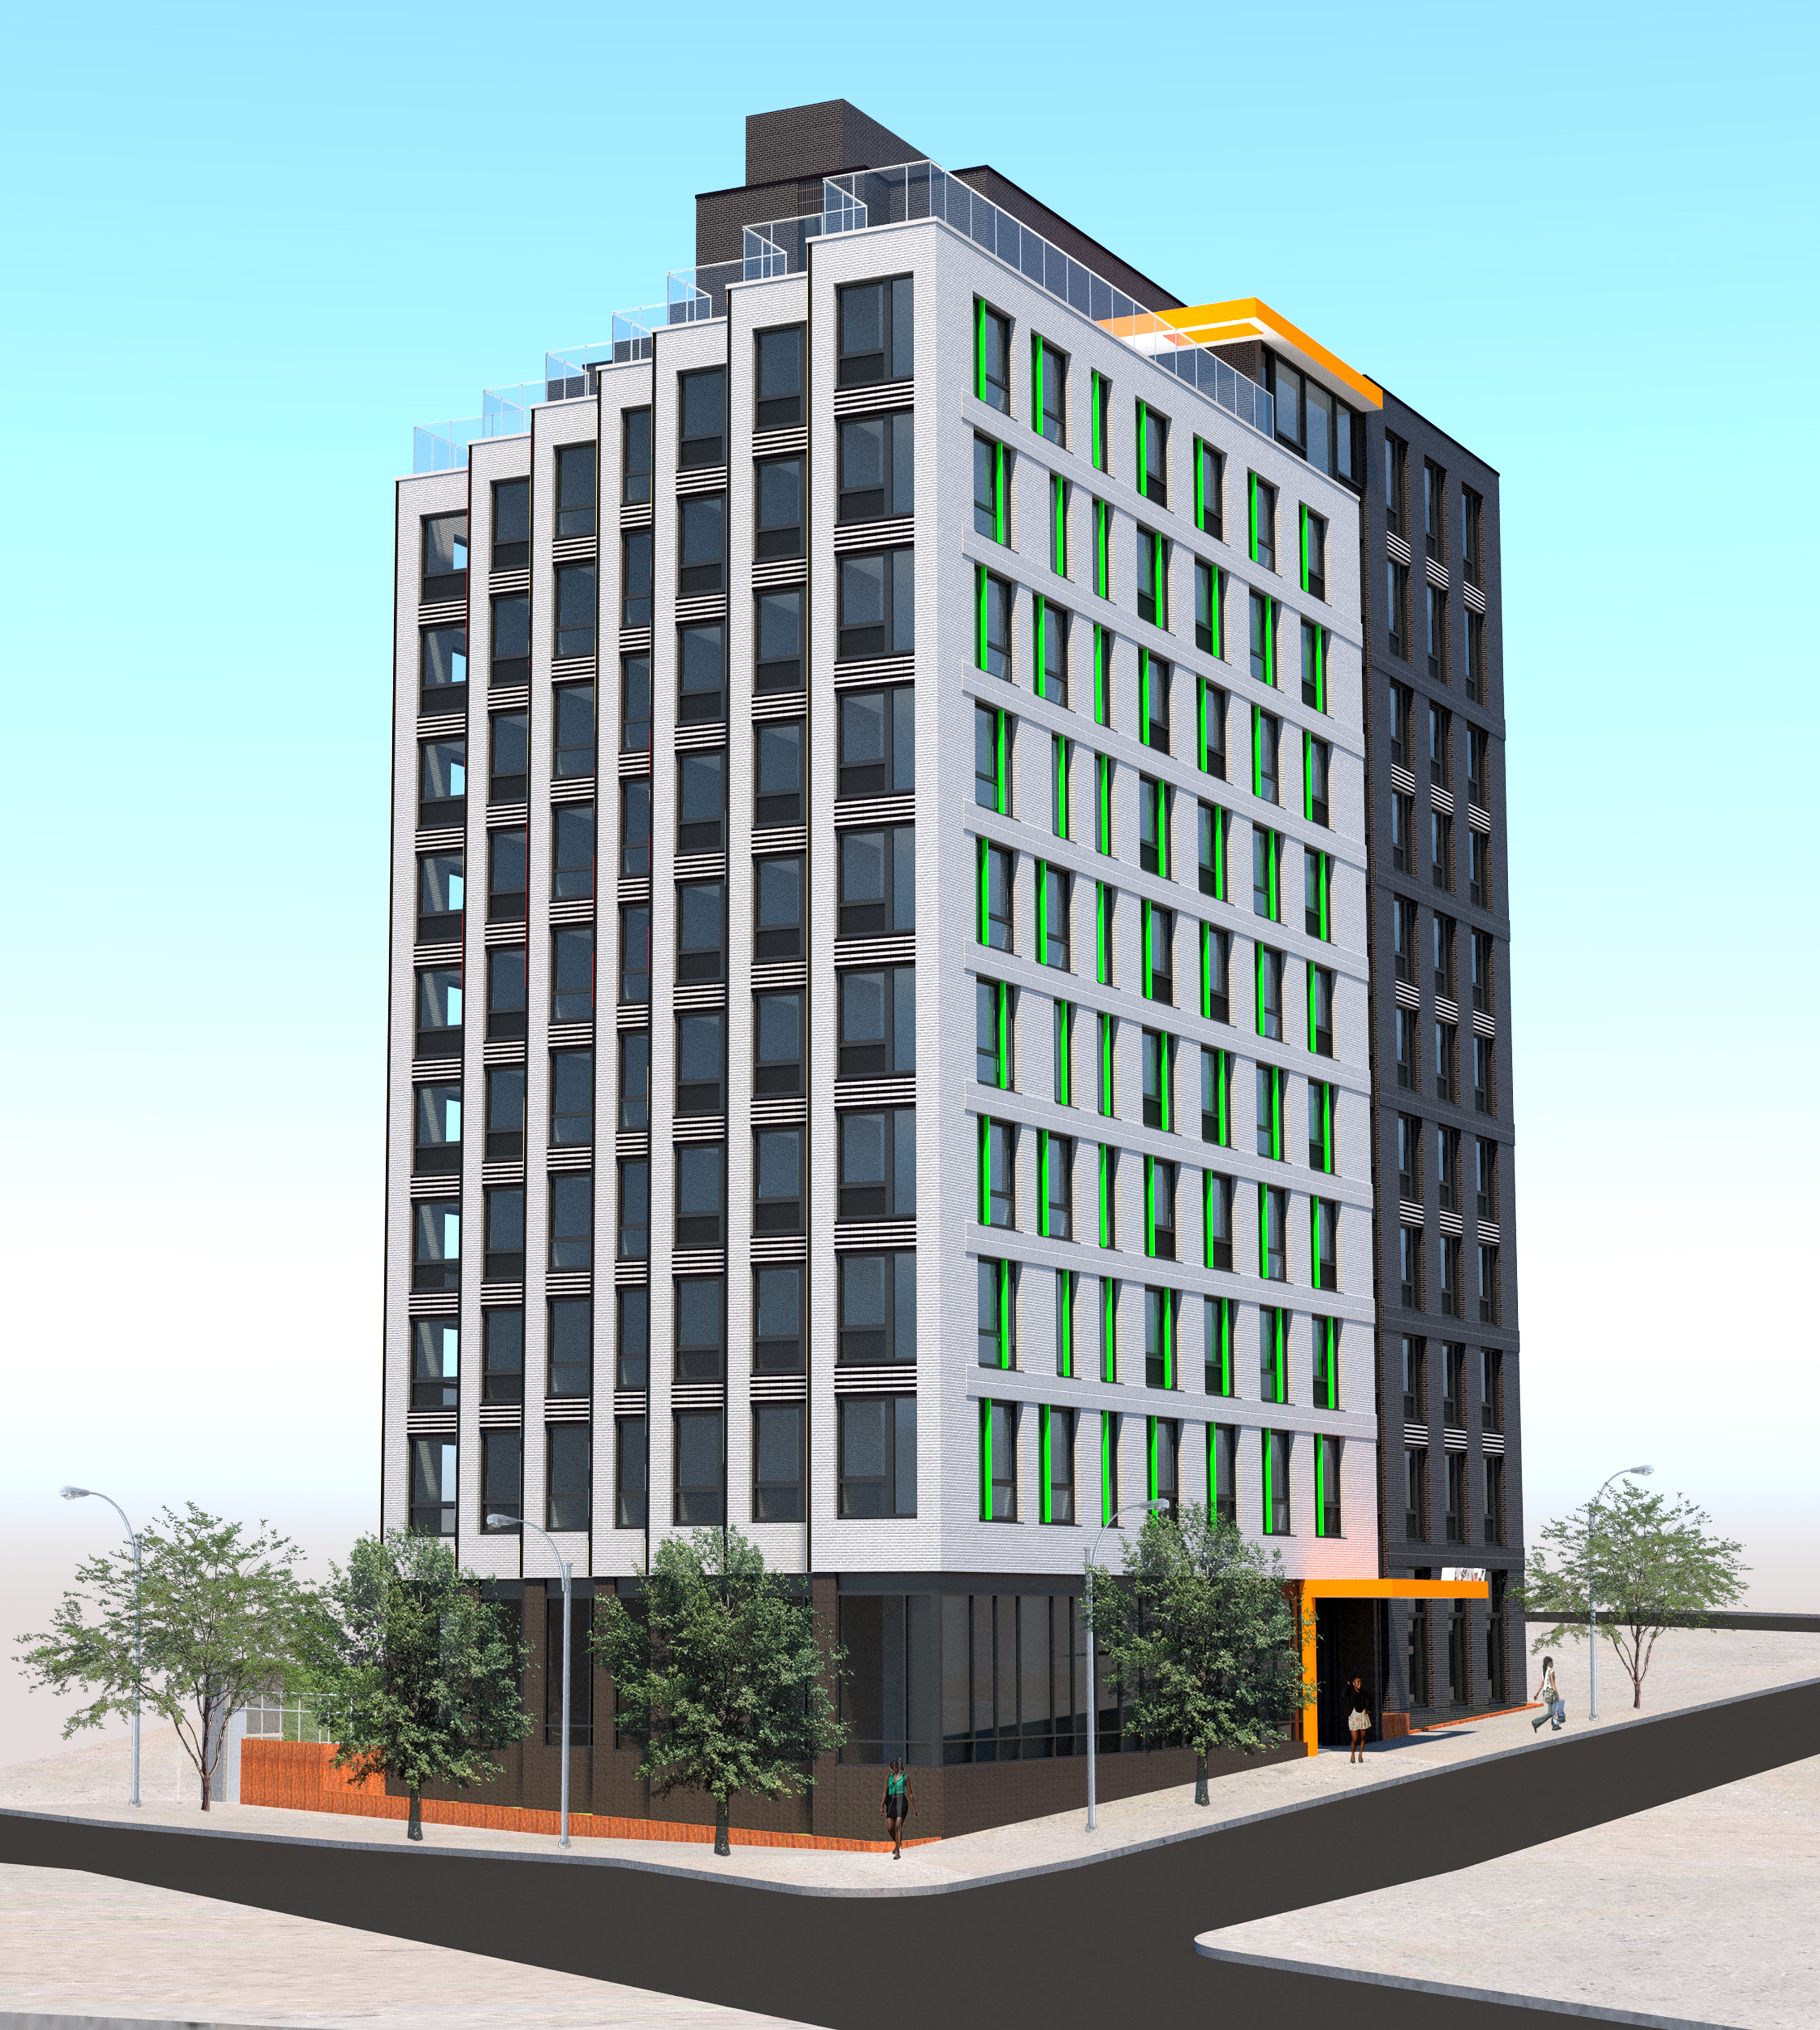 A rendering of the 11-story building that will contain 80 affordable apartments.